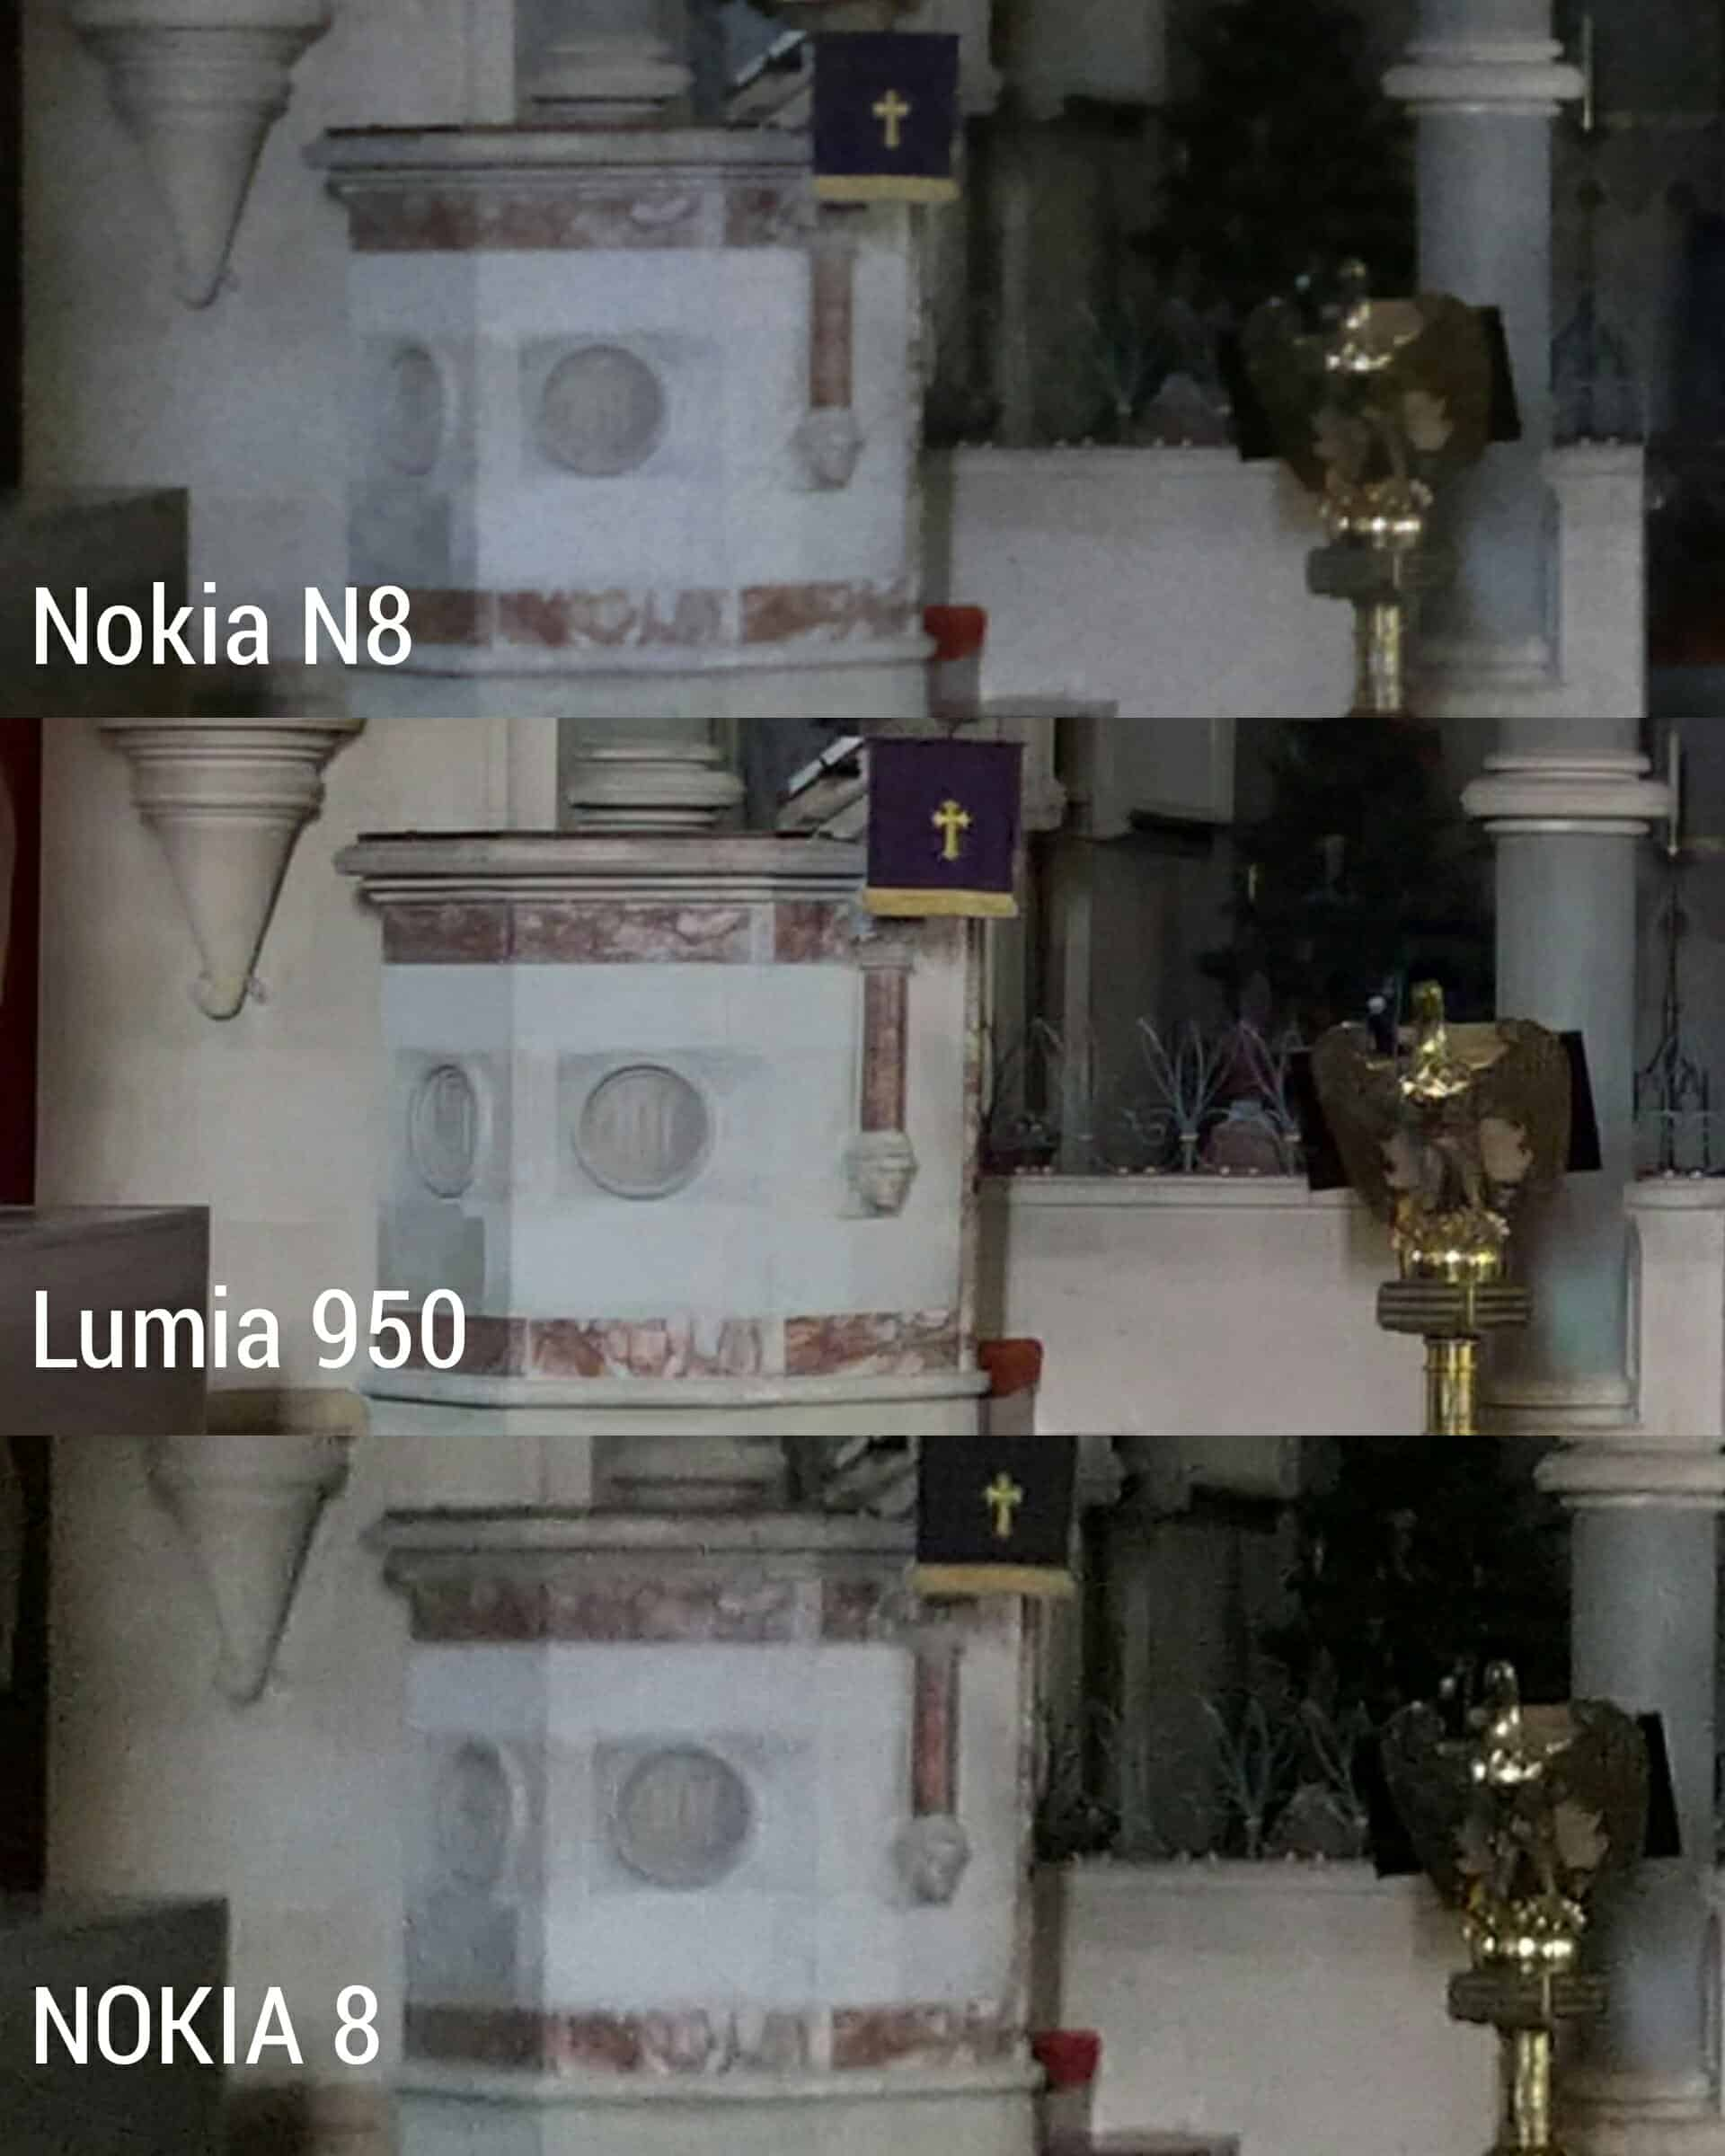 All About Symbian: Lumia 950 beats NOKIA 8 in camera showdown! NOKIA 8 ties score with the 7-year old Nokia N8!